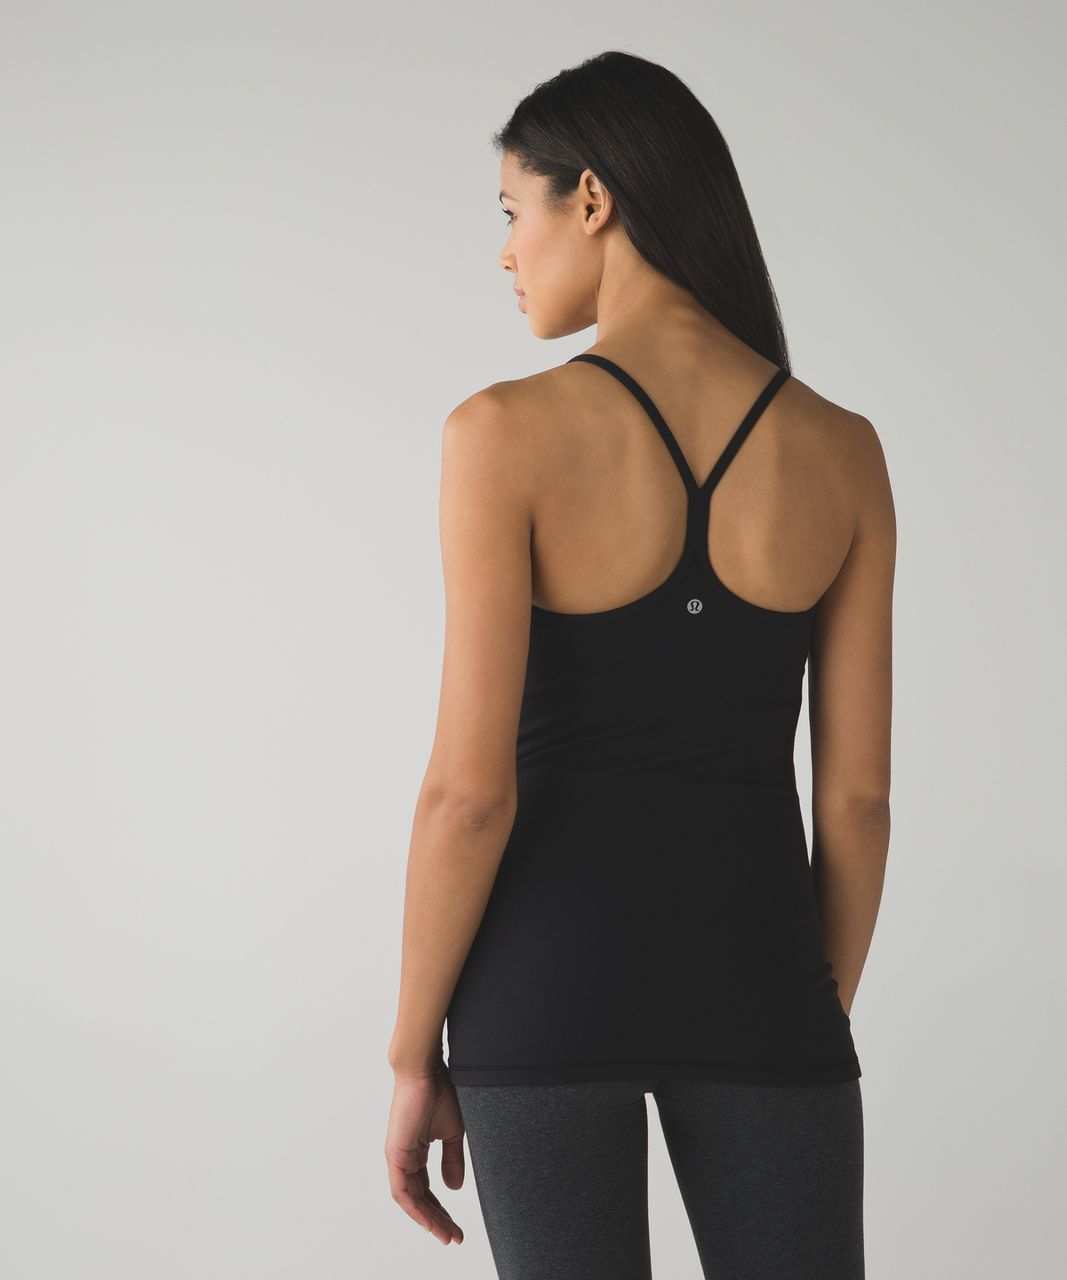 Lululemon Power Y Tank *Luon - Black (Second Release)